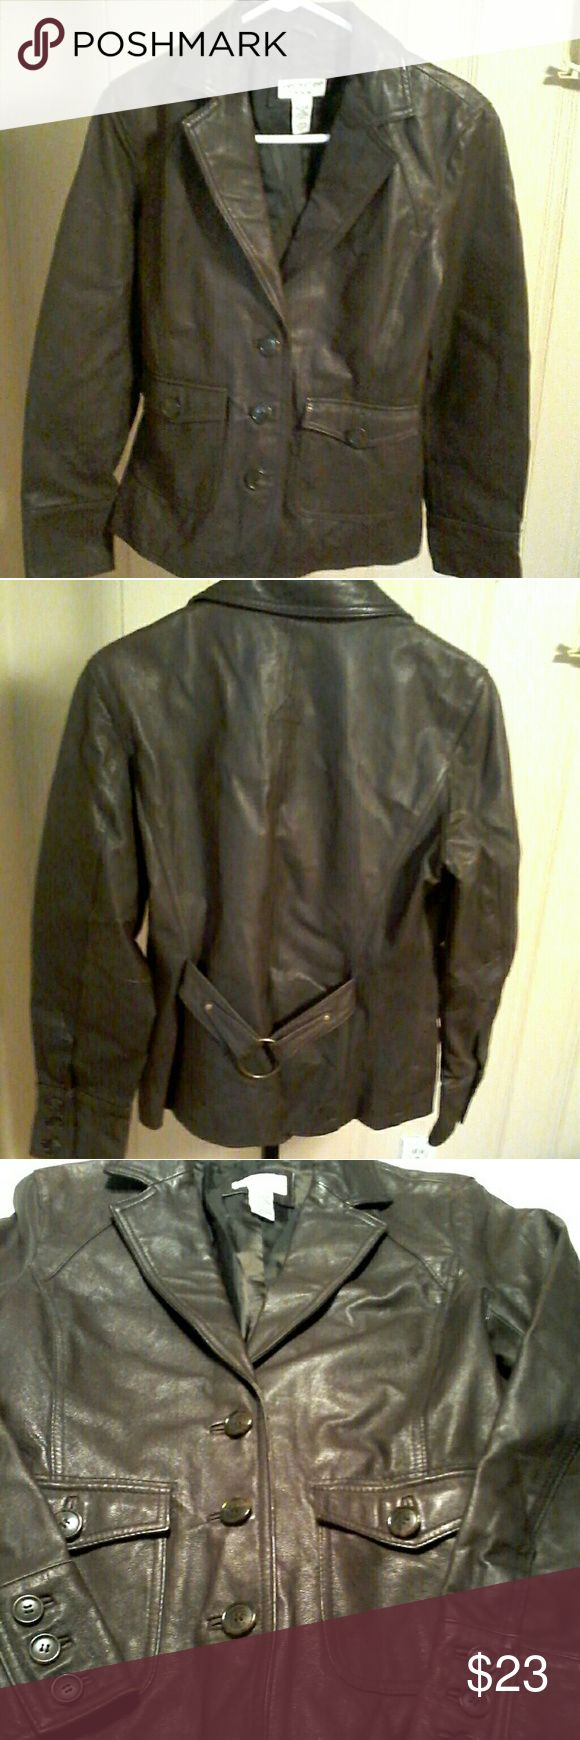 """COVINGTON Dark Brown Genuine Leather Jacket Sz M Ladies Covington dark brown genuine leather jacket. The tag says medium, but it looks a little small, so please pay attention to the measurements:   shoulder to shoulder 16"""", armpit to armpit 19"""",length 24"""" and sleeve 23"""" Covington Jackets & Coats"""